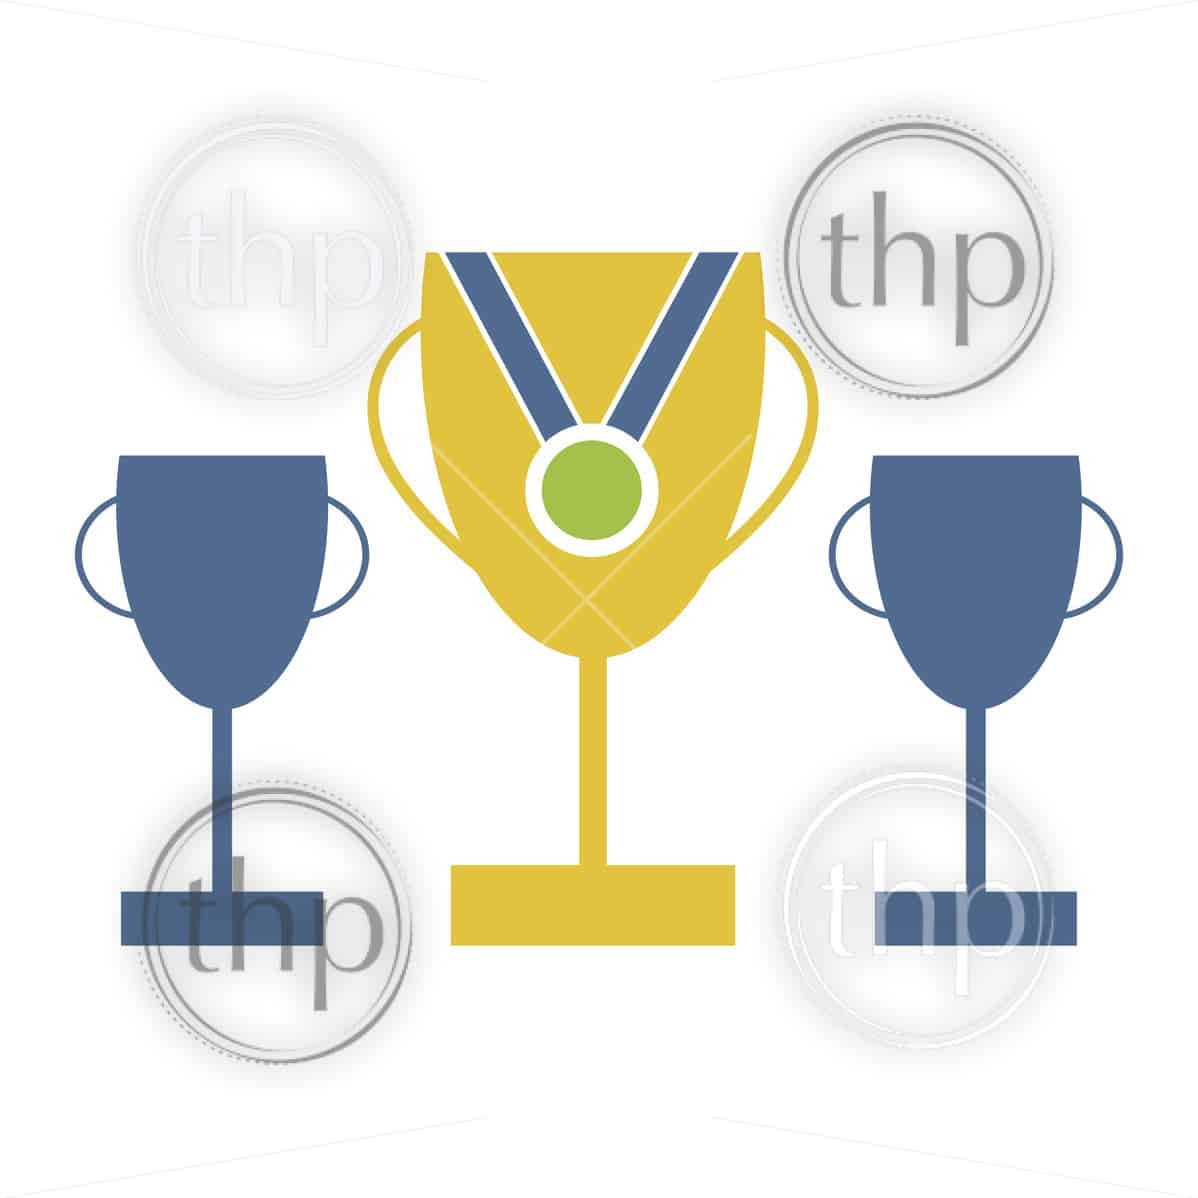 Flat design style vector of trophies and medals for success concept